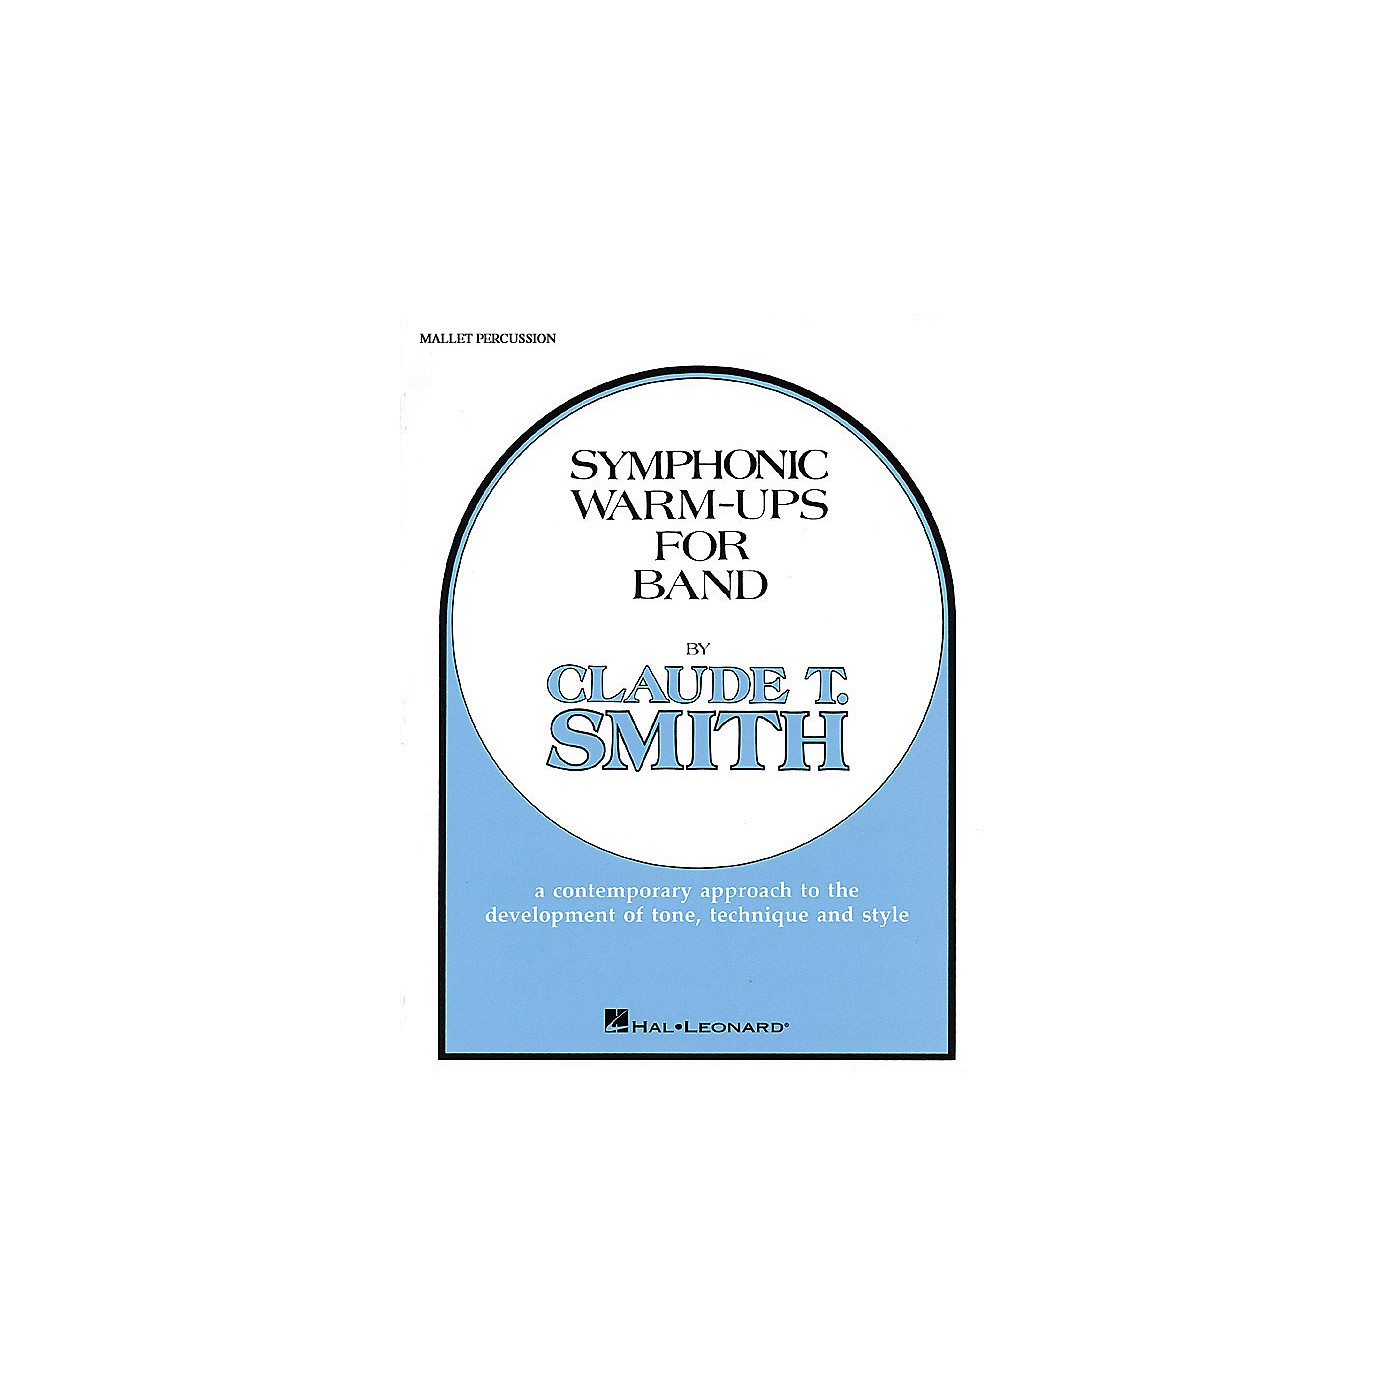 Hal Leonard Symphonic Warm-Ups for Band (Mallet Percussion) Concert Band Level 2-3 Composed by Claude T. Smith thumbnail